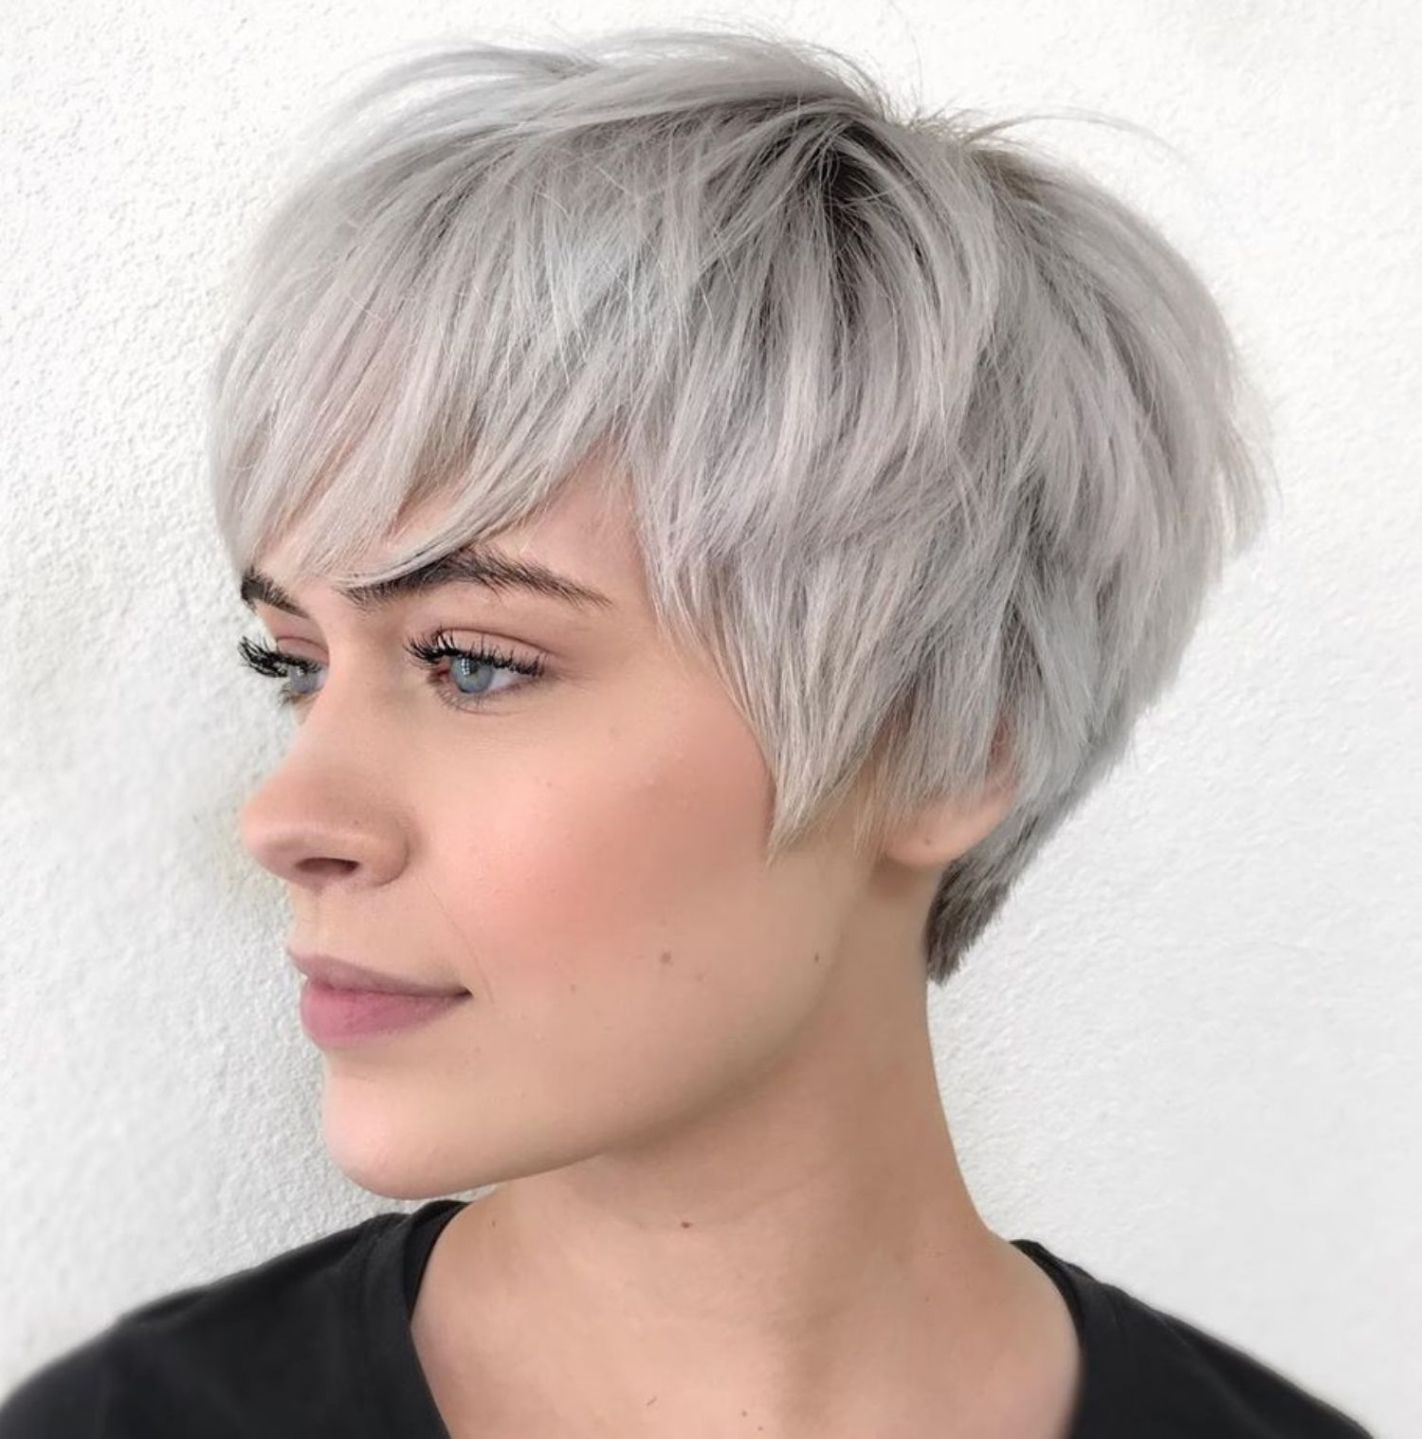 Pixie Haircuts For Thick Hair 50 Ideas Of Ideal Short Haircuts In 2020 Pixie Haircut For Thick Hair Haircut For Thick Hair Short Hairstyles For Thick Hair